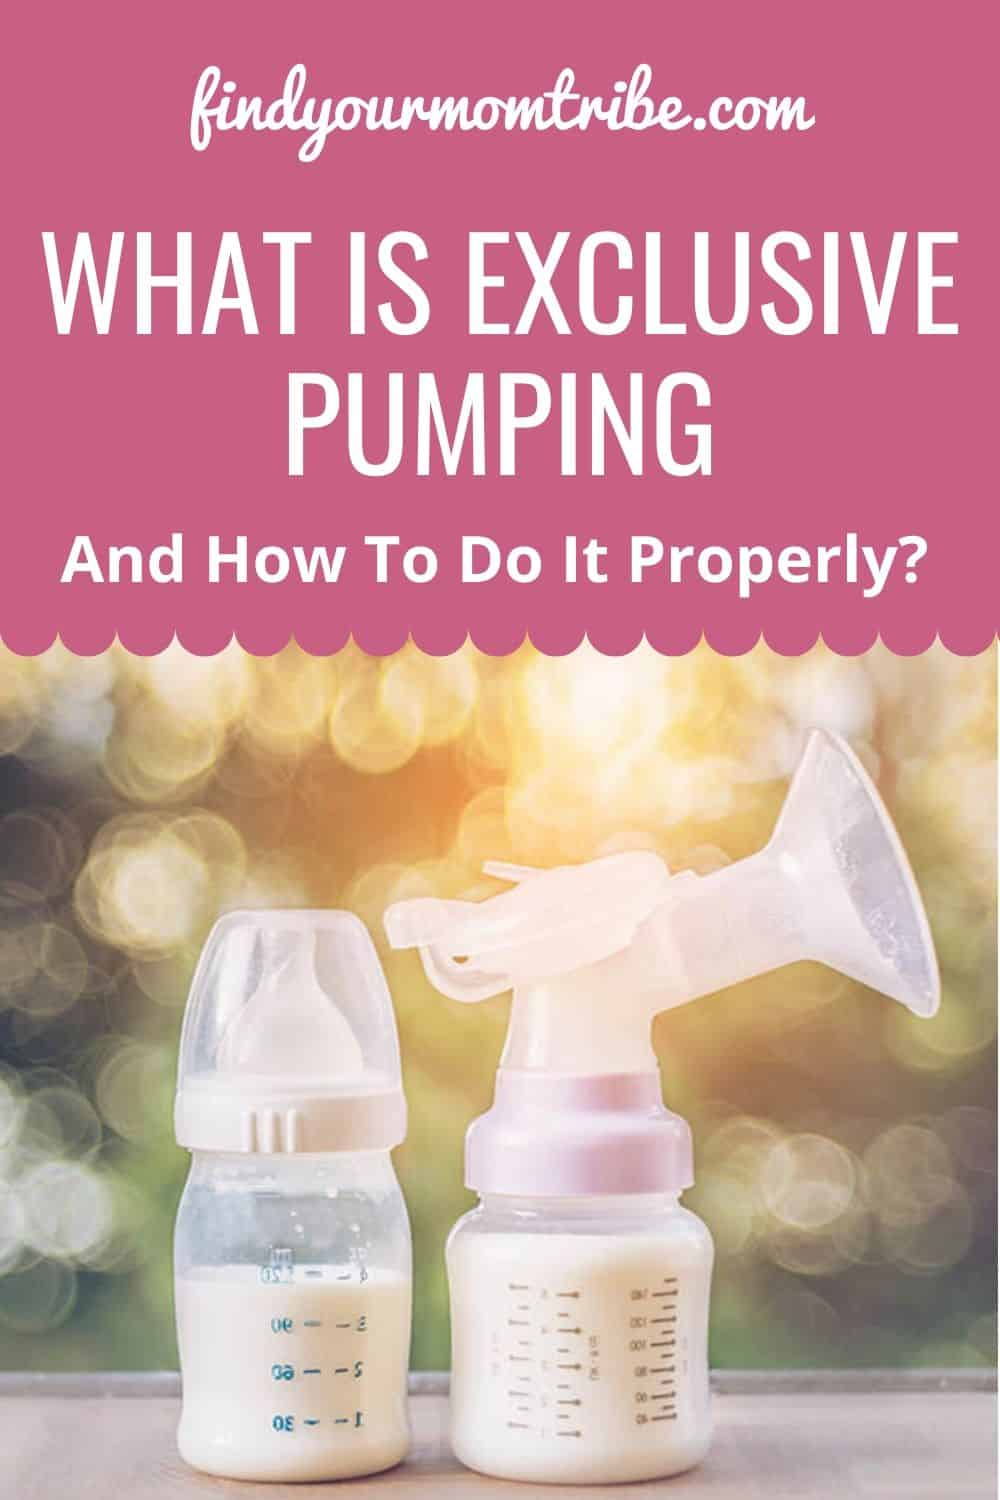 What Is Exclusive Pumping